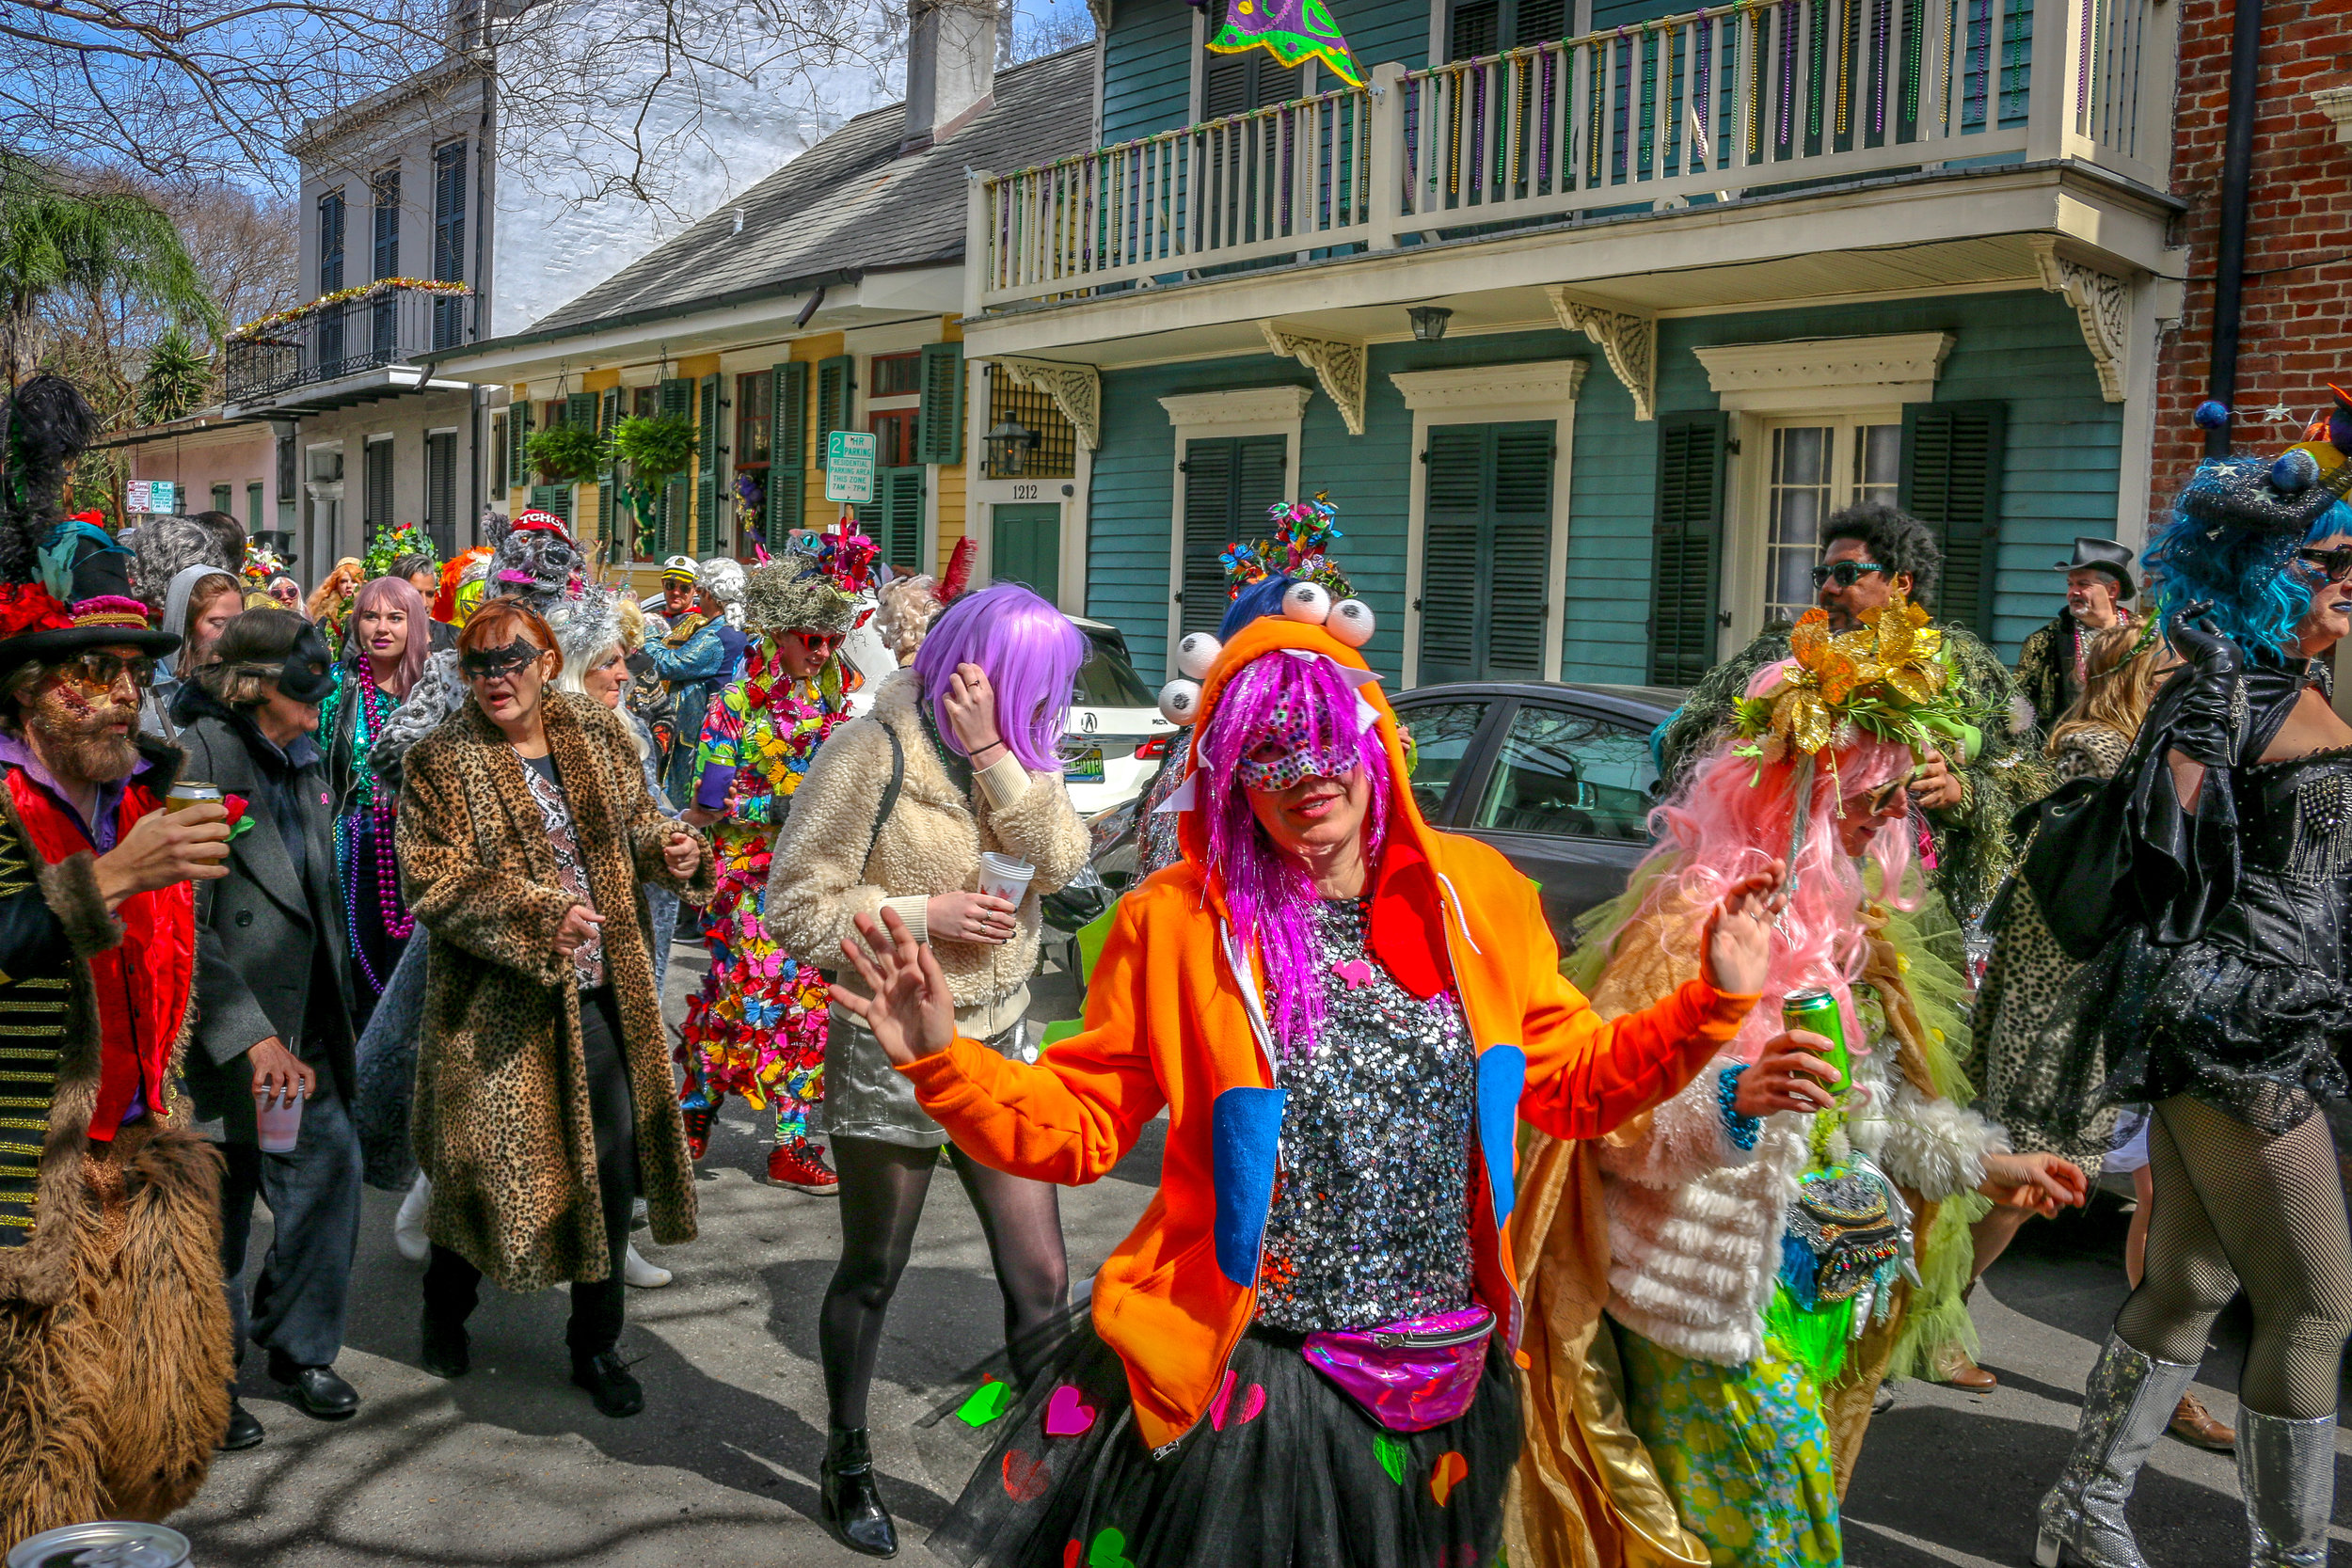 Parading in the Marigny